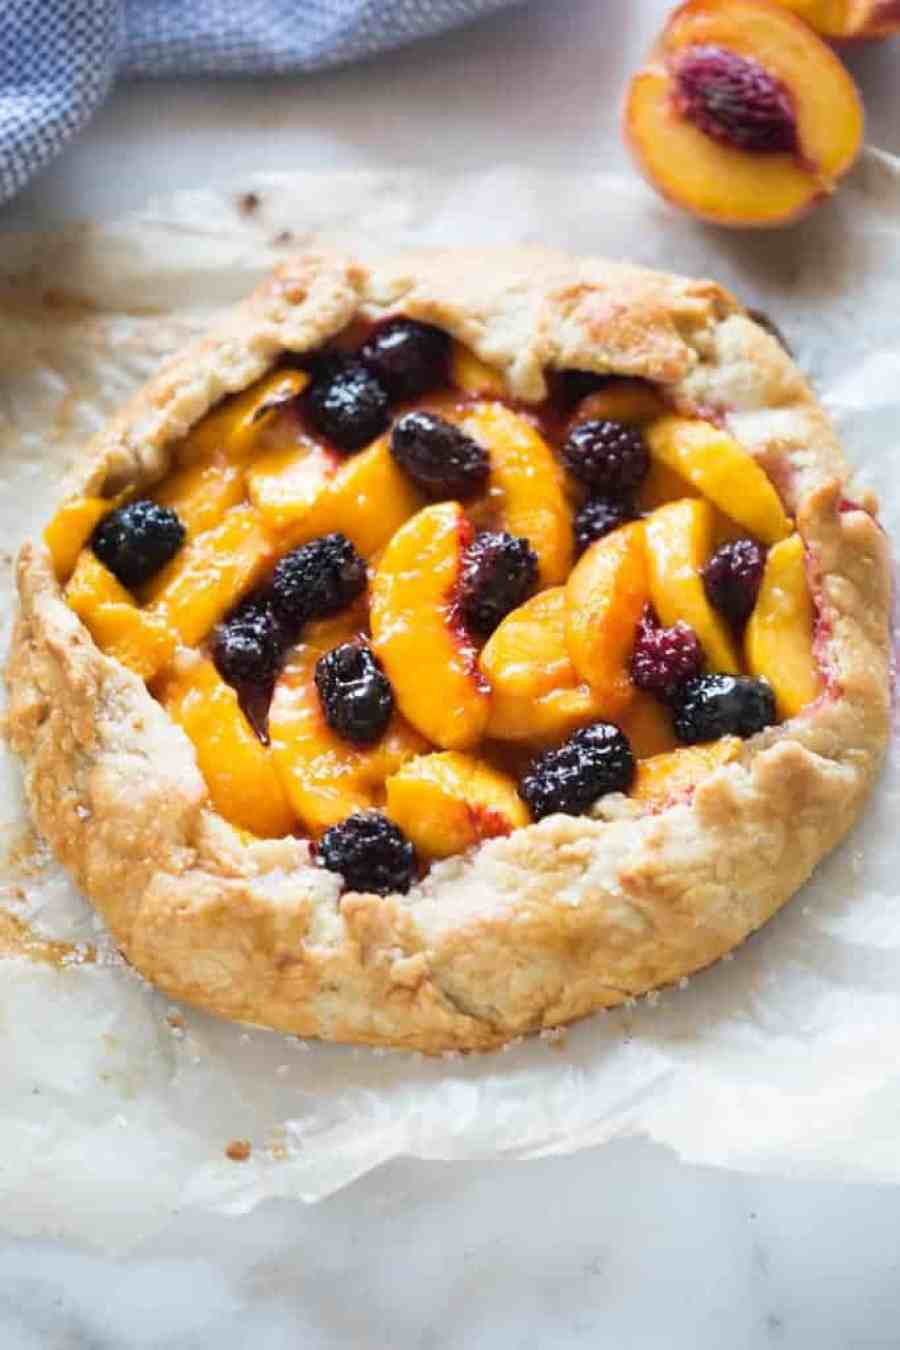 "This Peach Blackberry Tart is pretty enough to seem ""fancy"" and impressive, but it couldn't be easier to make! A great easy dessert idea for your fresh summer peaches and blackberries. 